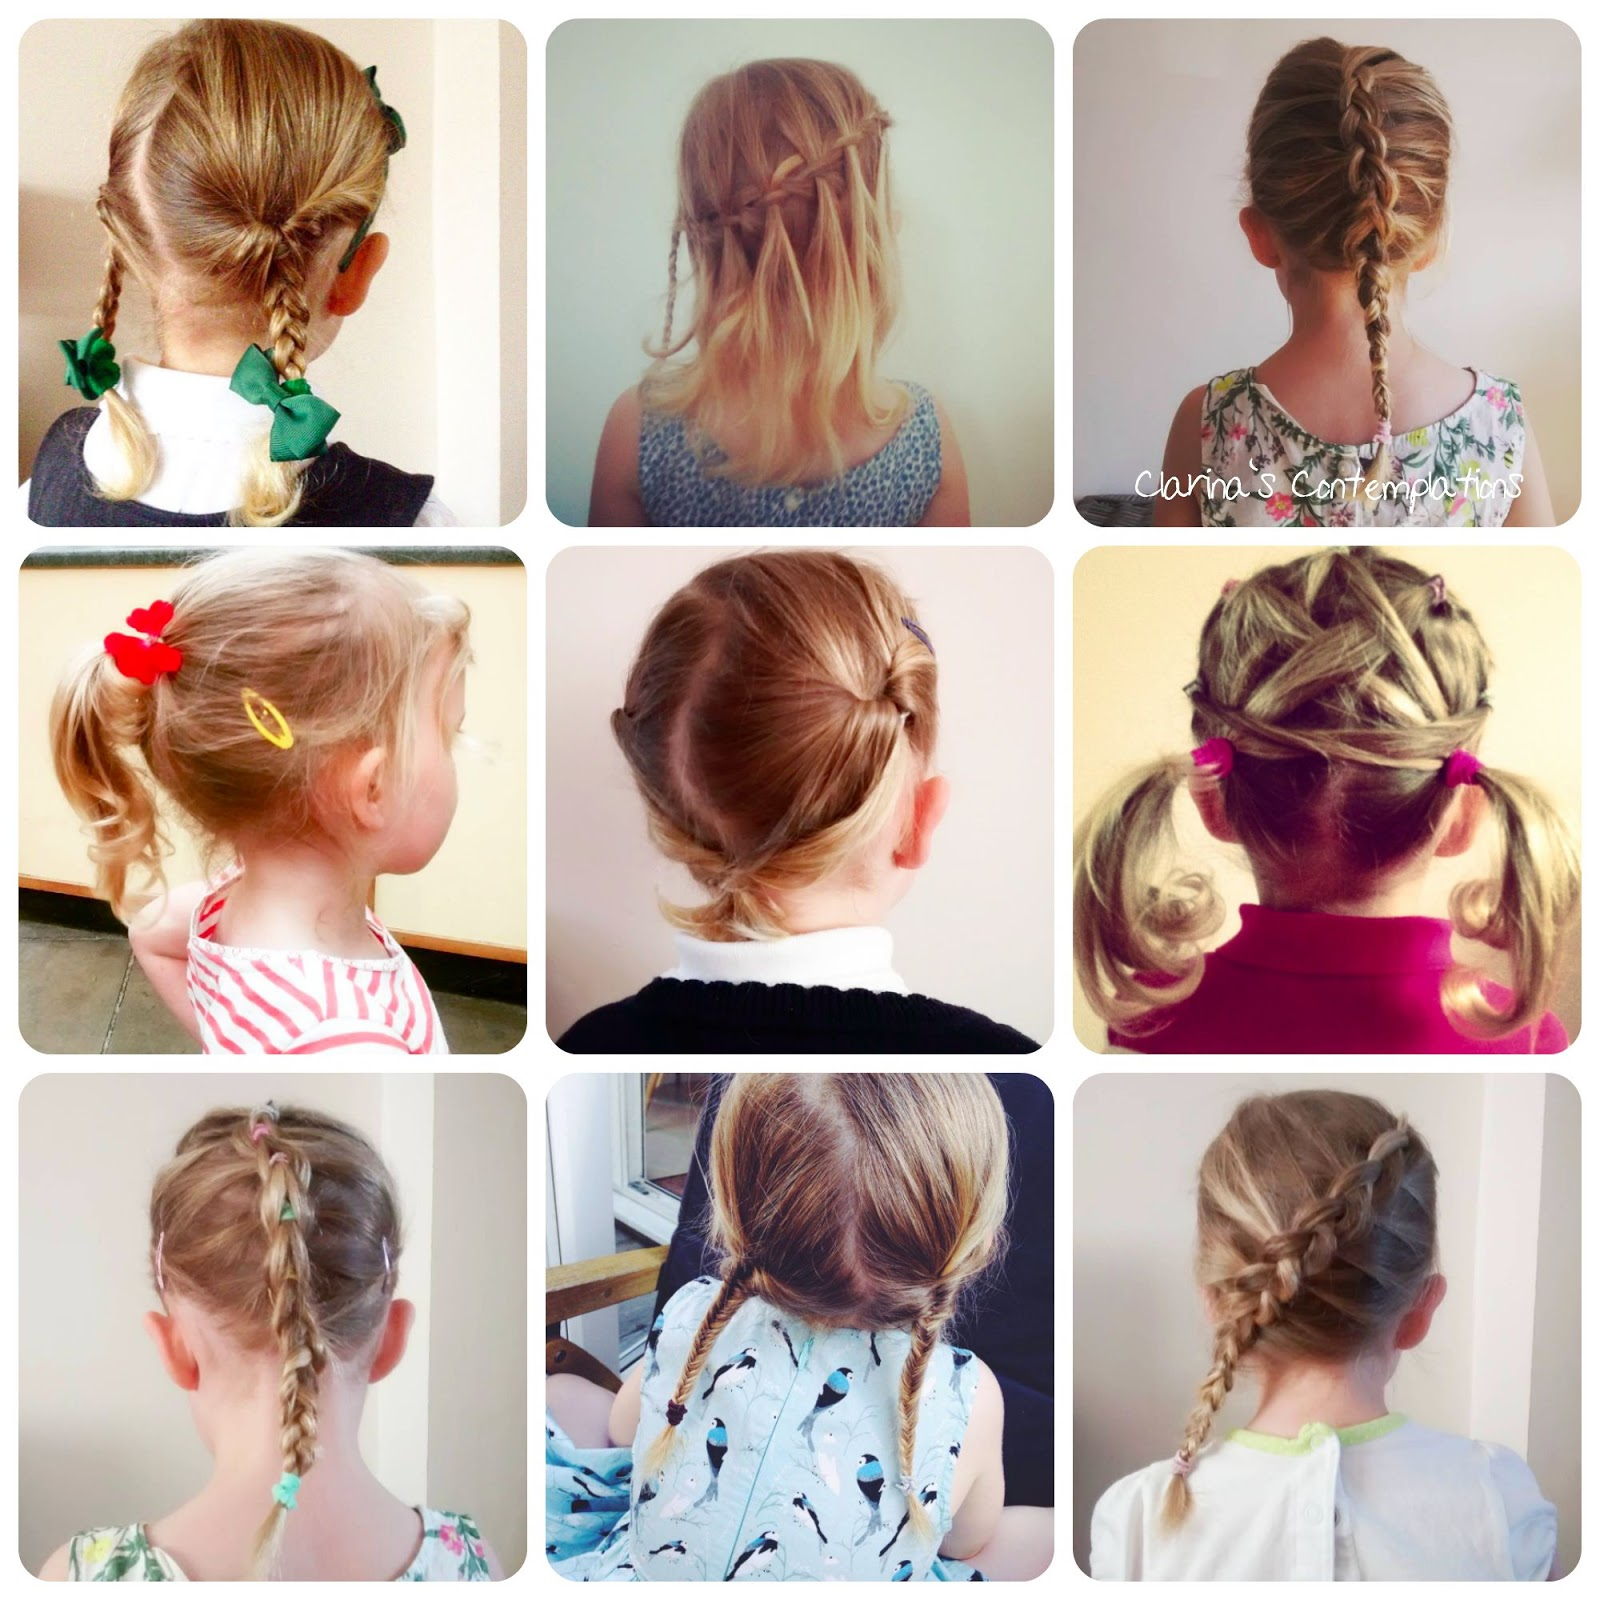 Clarina39s Contemplations 10 Lovely Little Girl Hairstyles